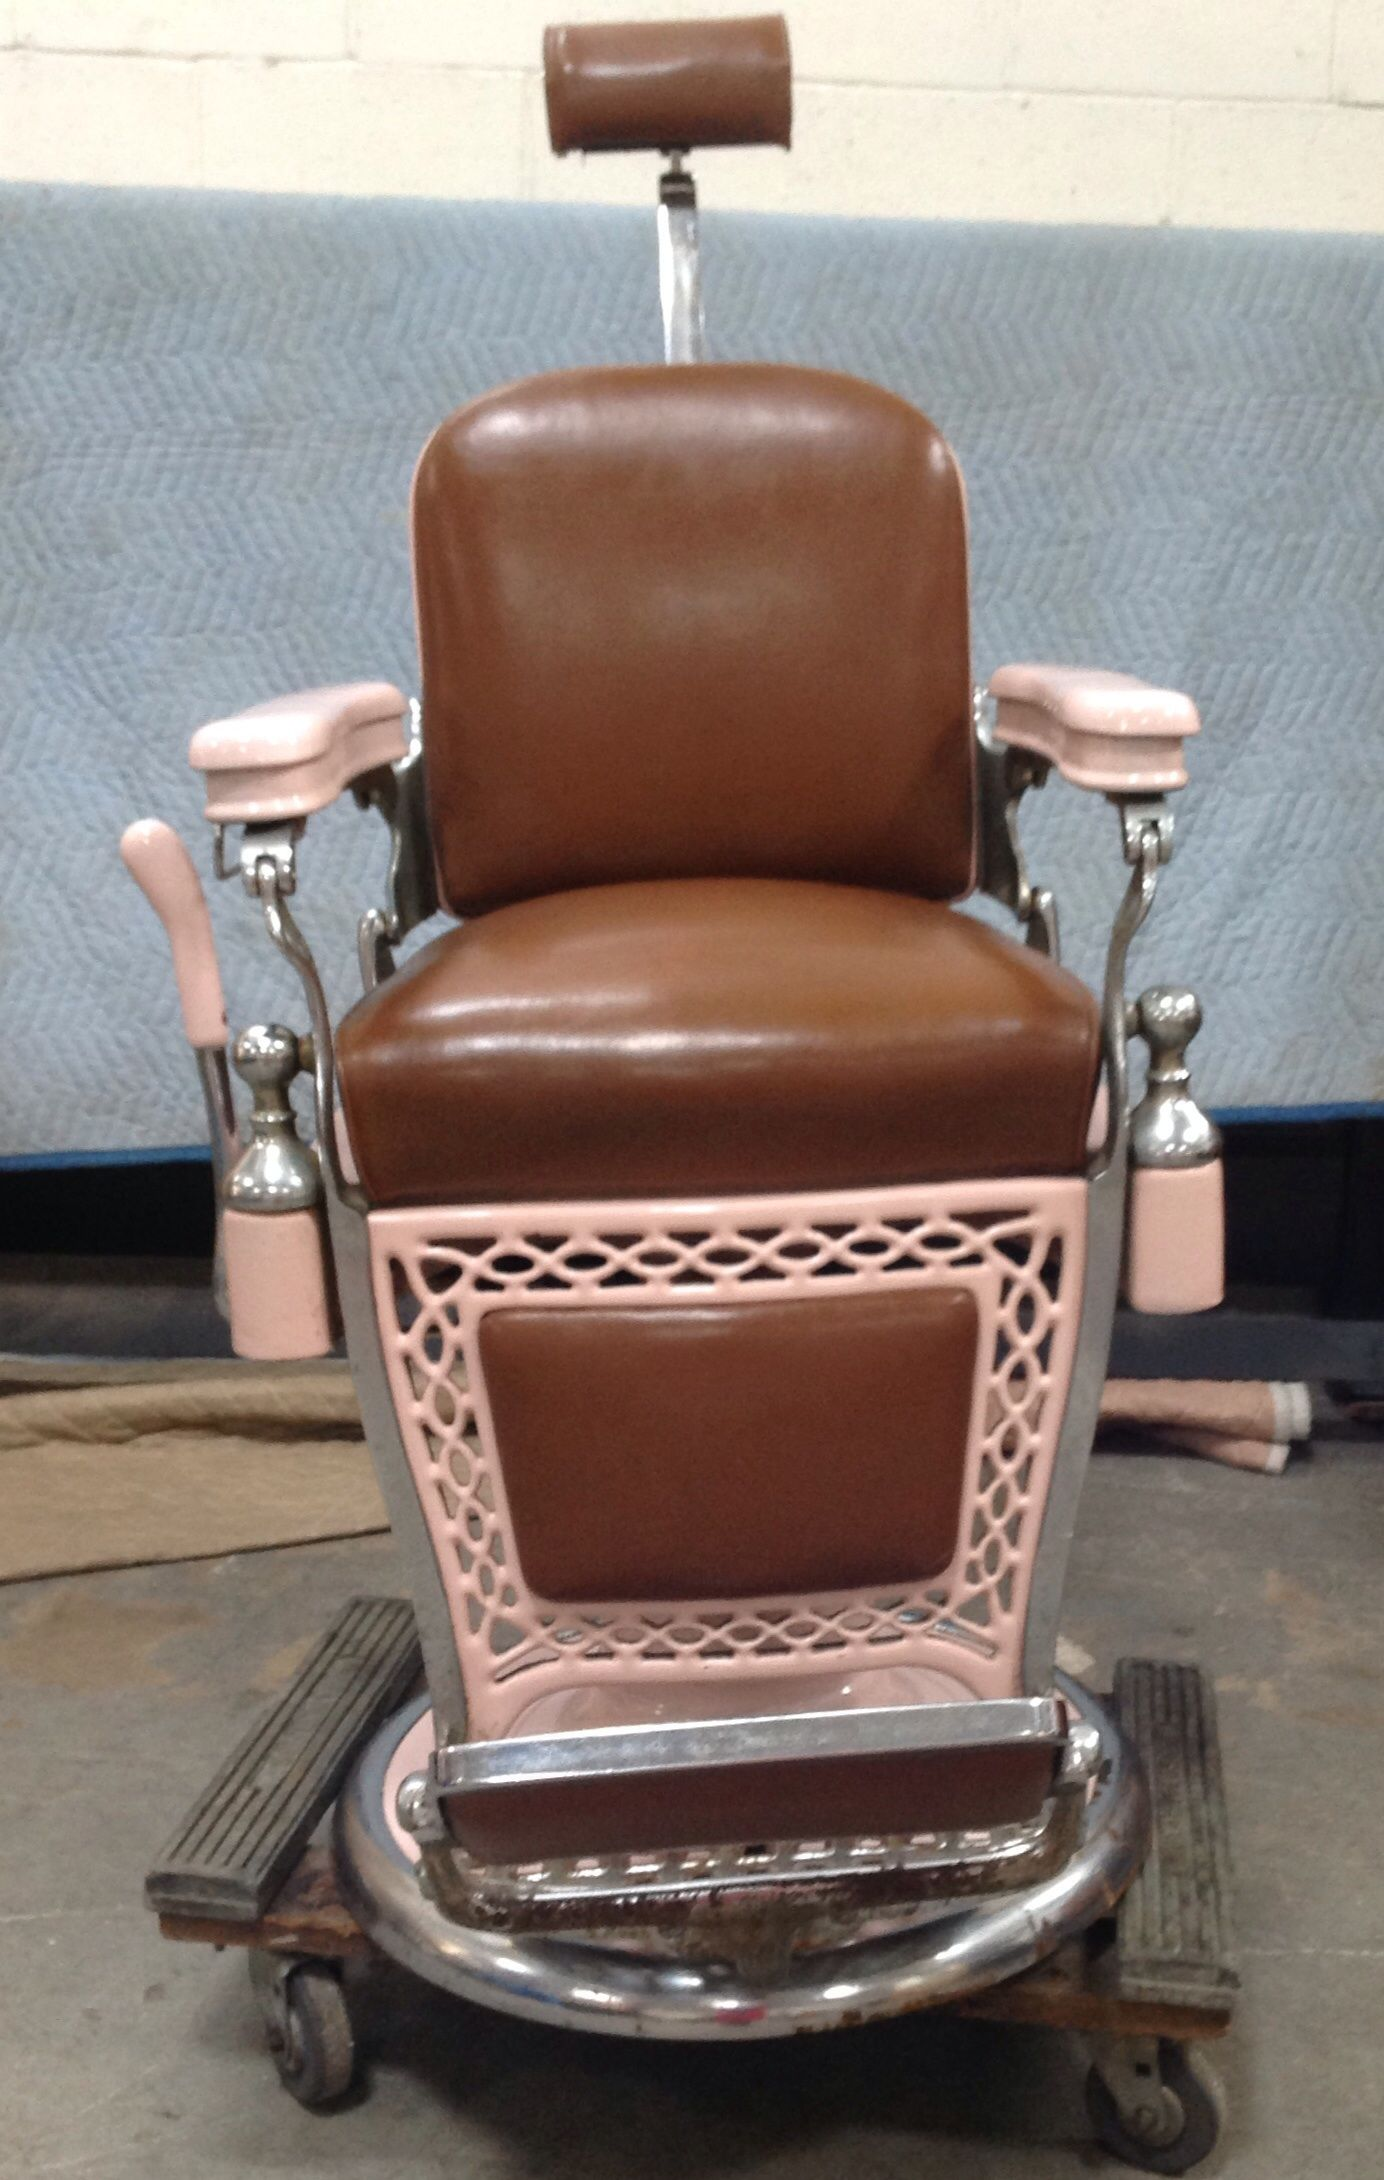 Tattooing Chairs For Sale Pc Gaming Chair Amazon Awesome Vintage Emil J Paidar Barber March 2